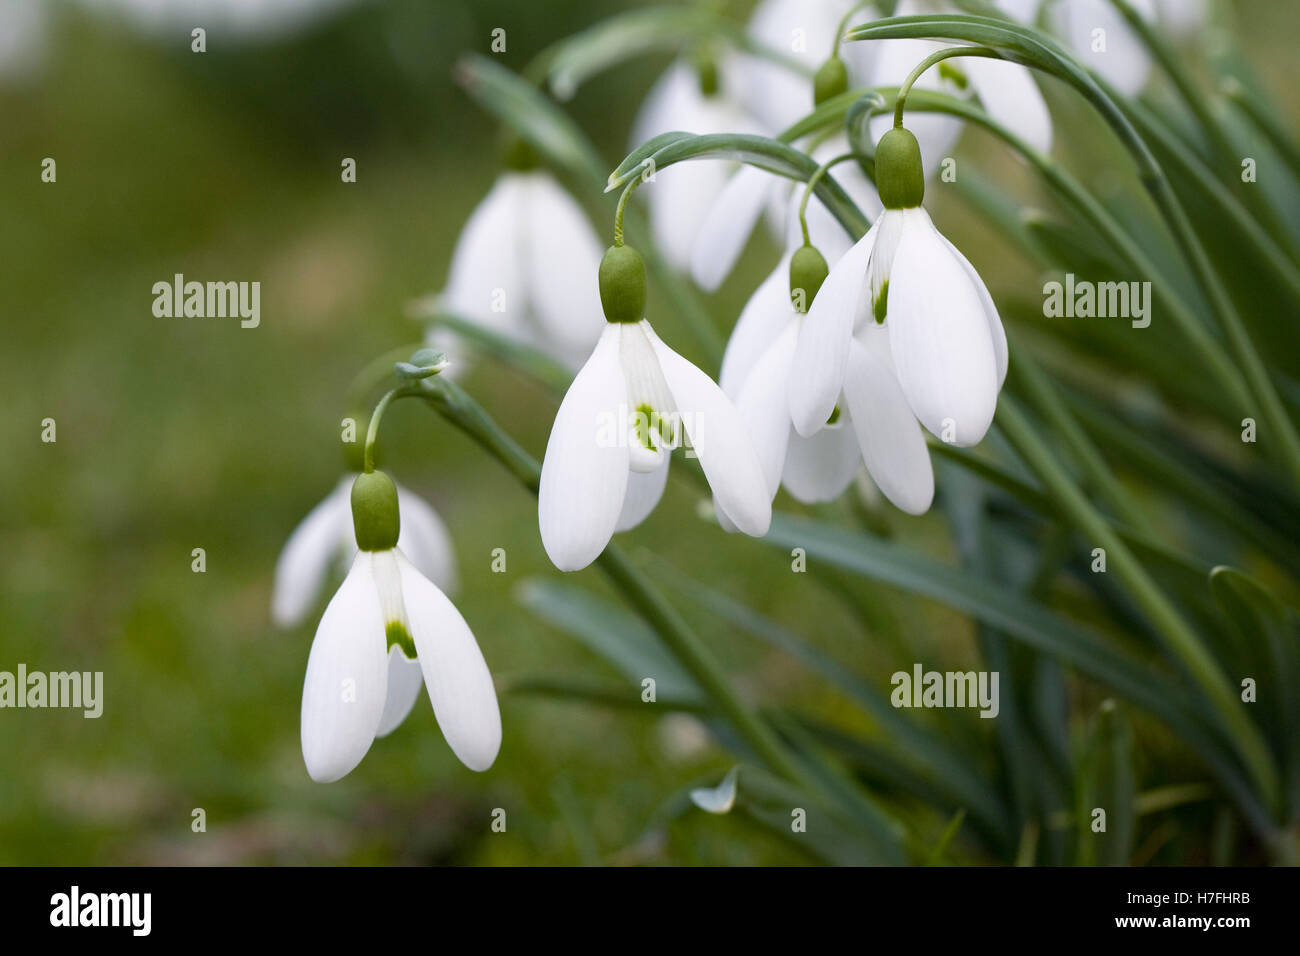 Galanthus Magnet flower. Snowdrops in the garden. - Stock Image